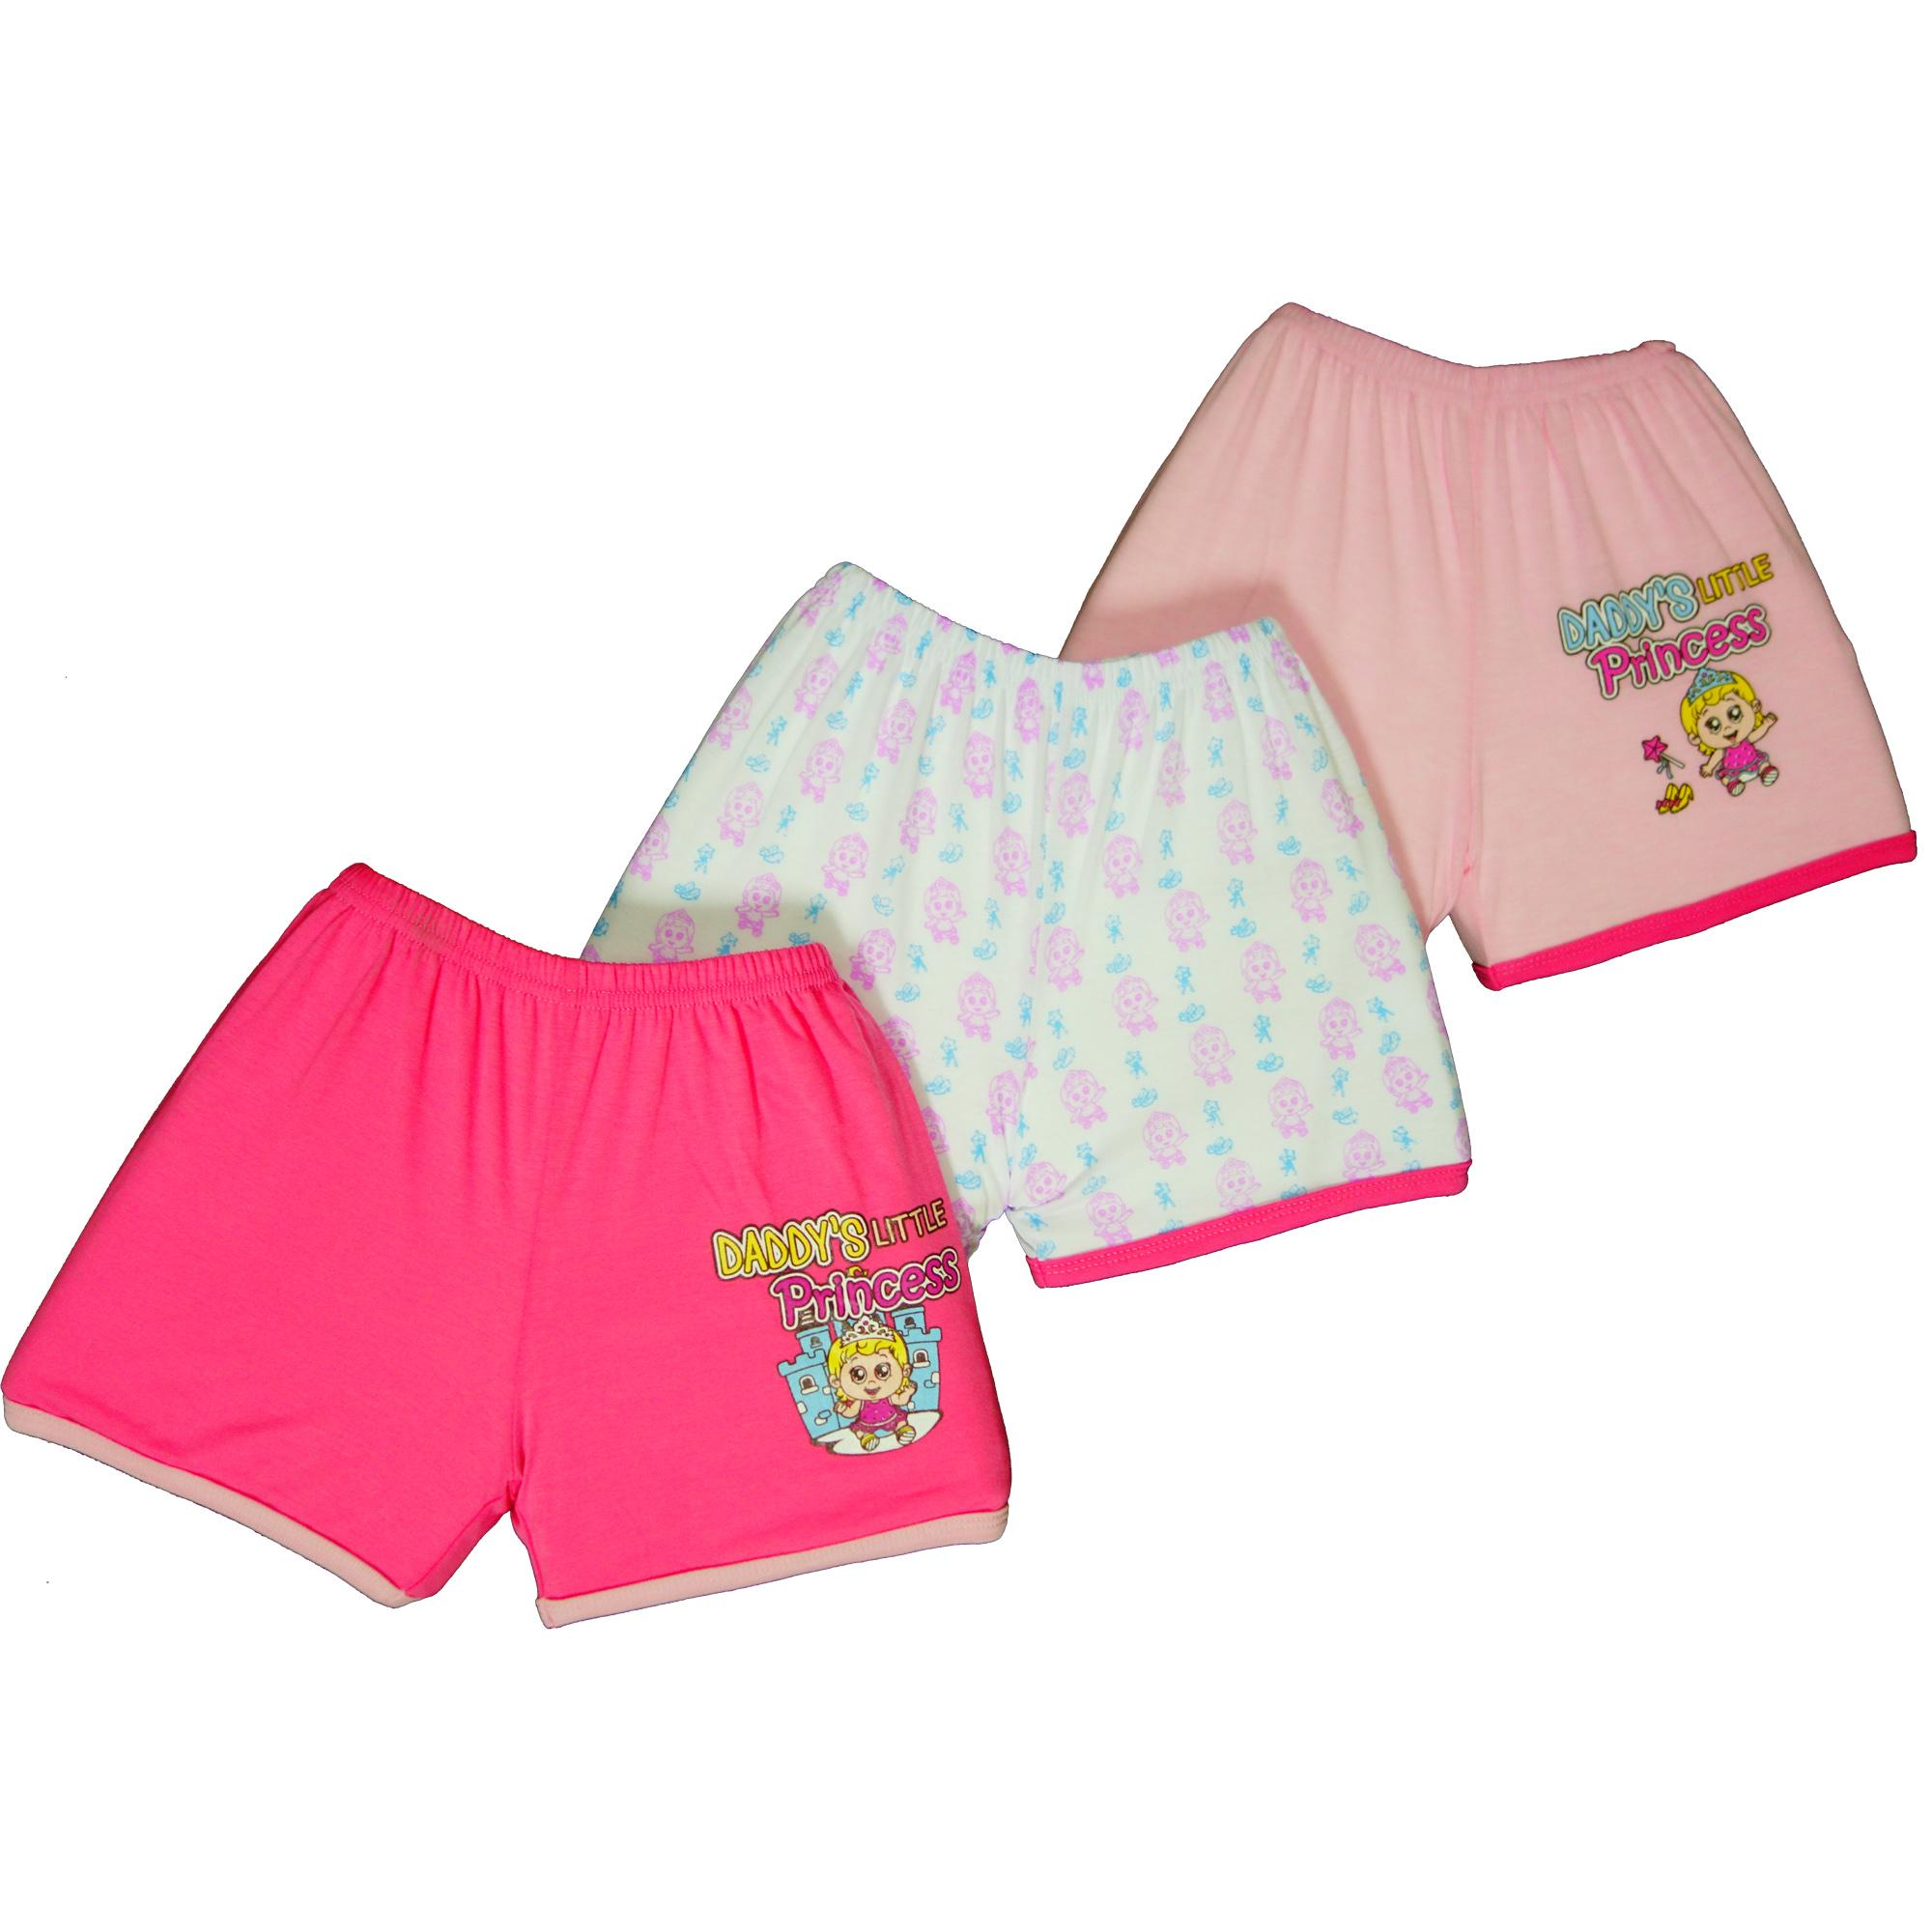 Froshie 3-Piece Baby Cotton Shorts (daddys Little Princess) By Froshie.